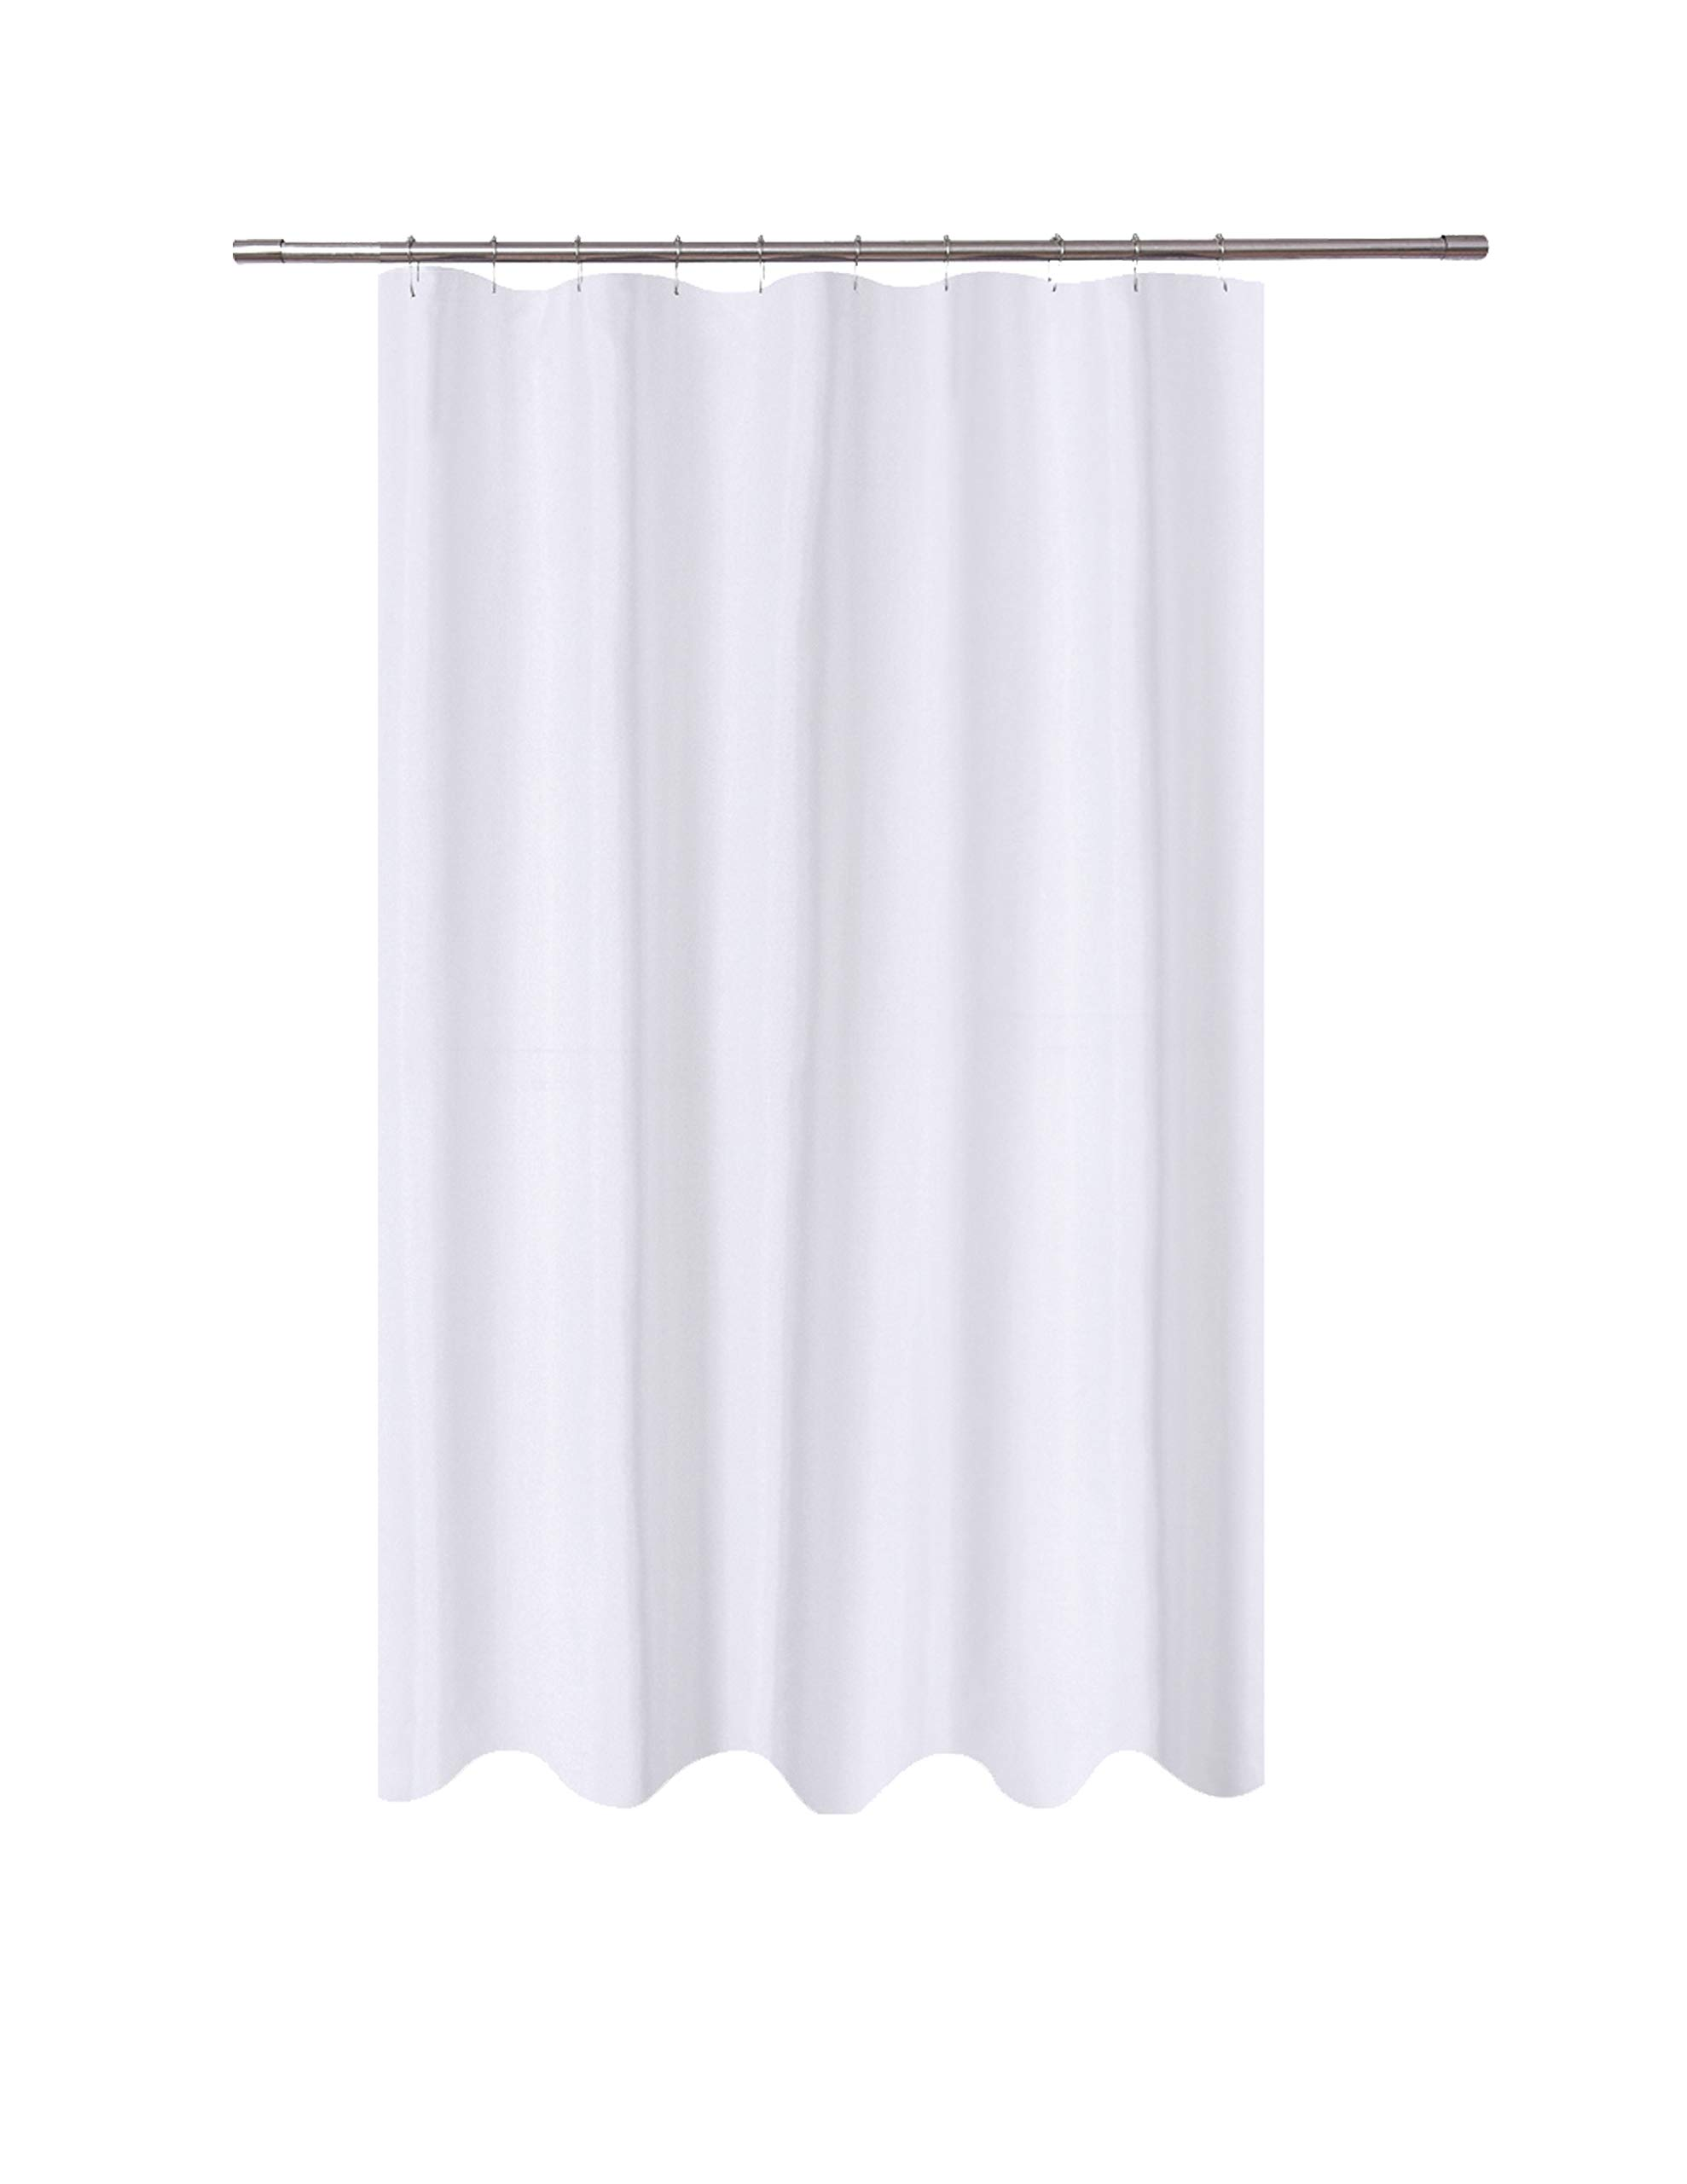 N&Y HOME Fabric Shower Curtain Liner 54 x 78 inches Bath Stall Size, Hotel Quality, Washable, Water Repellent, White Spa Bathroom Curtains with Grommets, 54x78